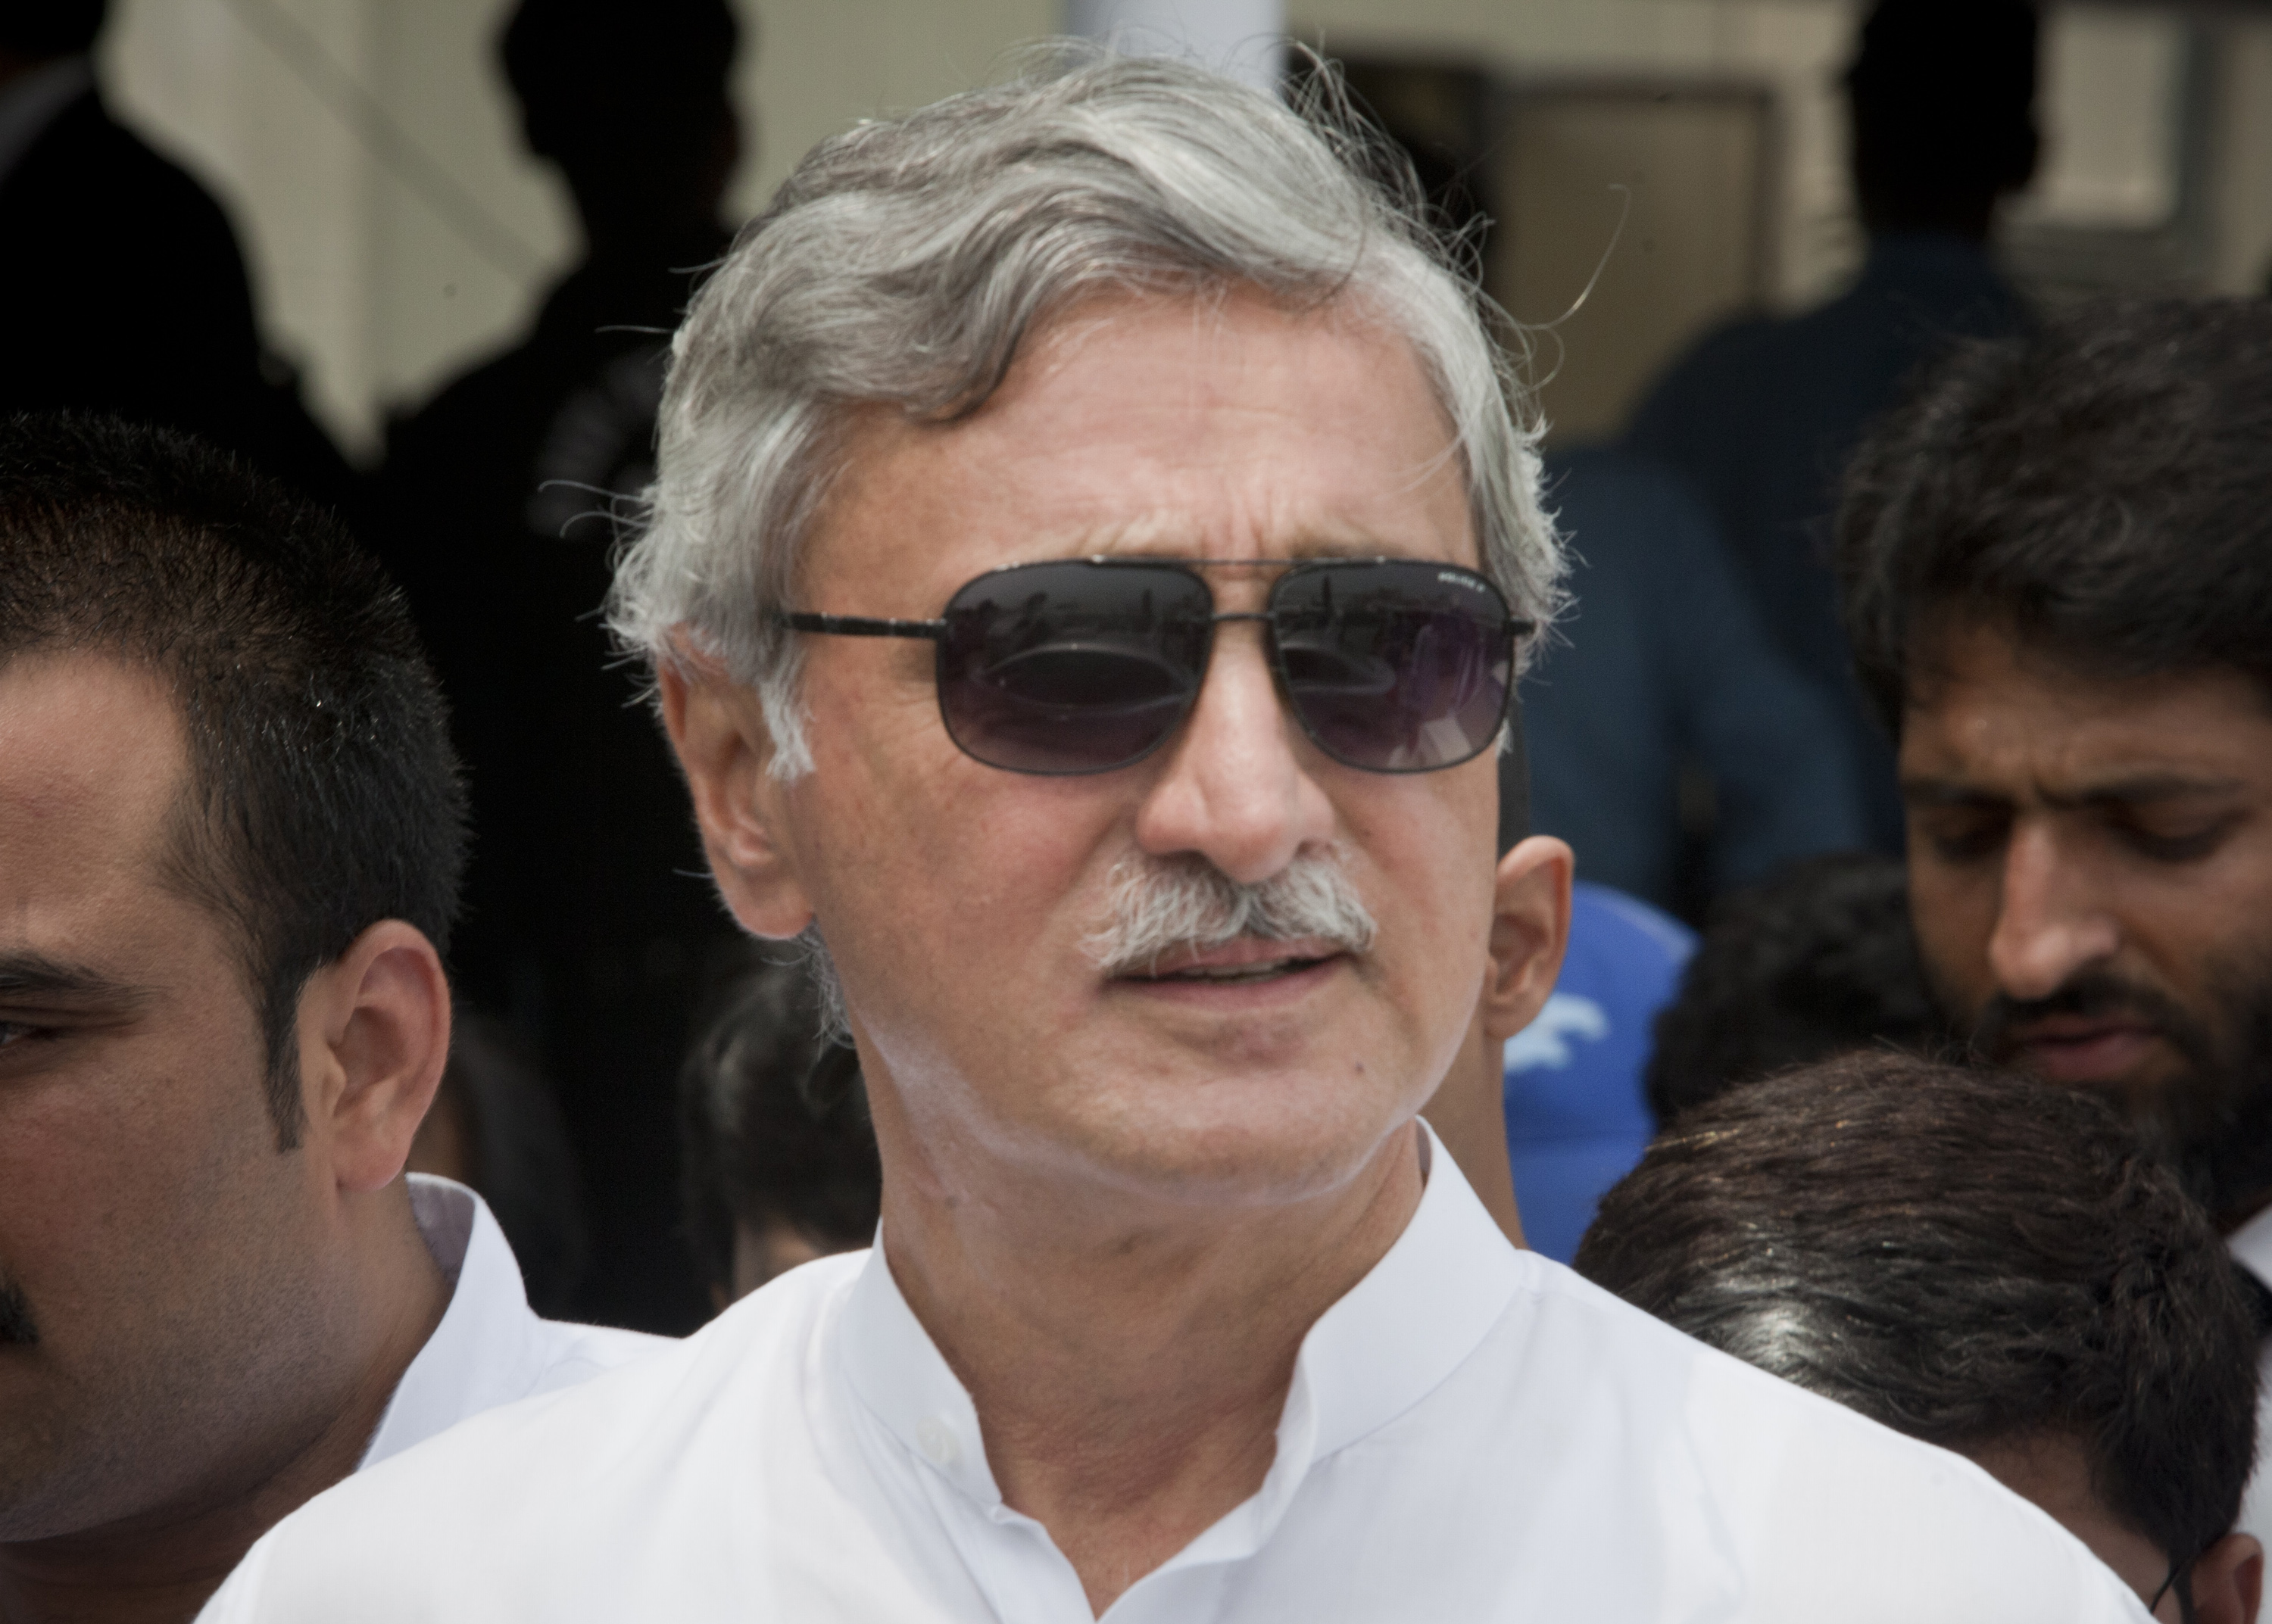 Jahangir Khan Tareen a leader of PTI as he leaves after attend the SC of Pak proceeding on the Panama Papers